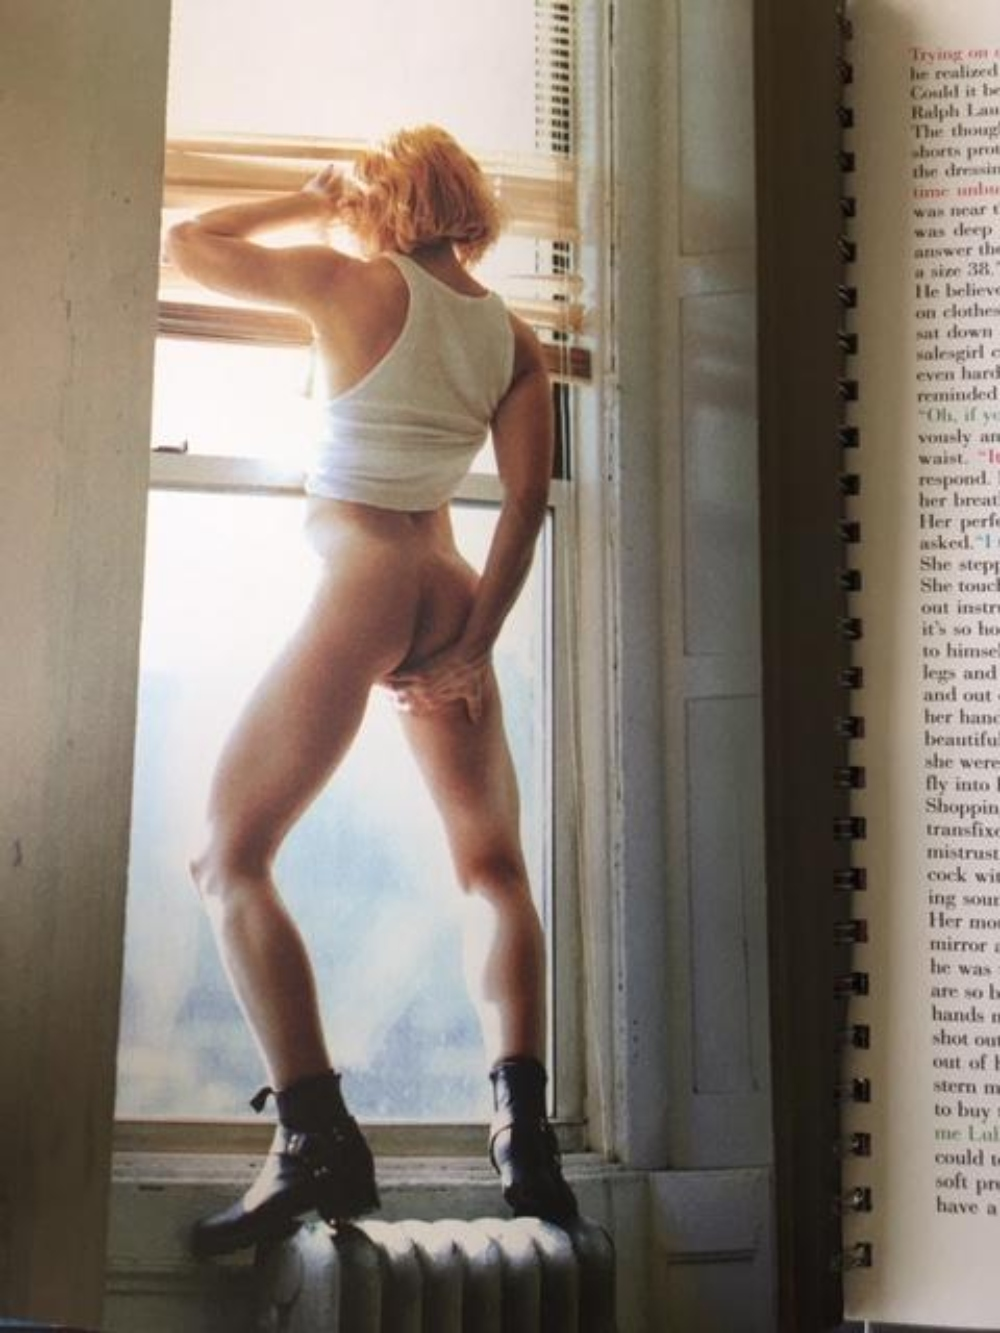 Lot 169: Madonna SEX 1992 Photography Book by Steven Meisel and Fabien Baron